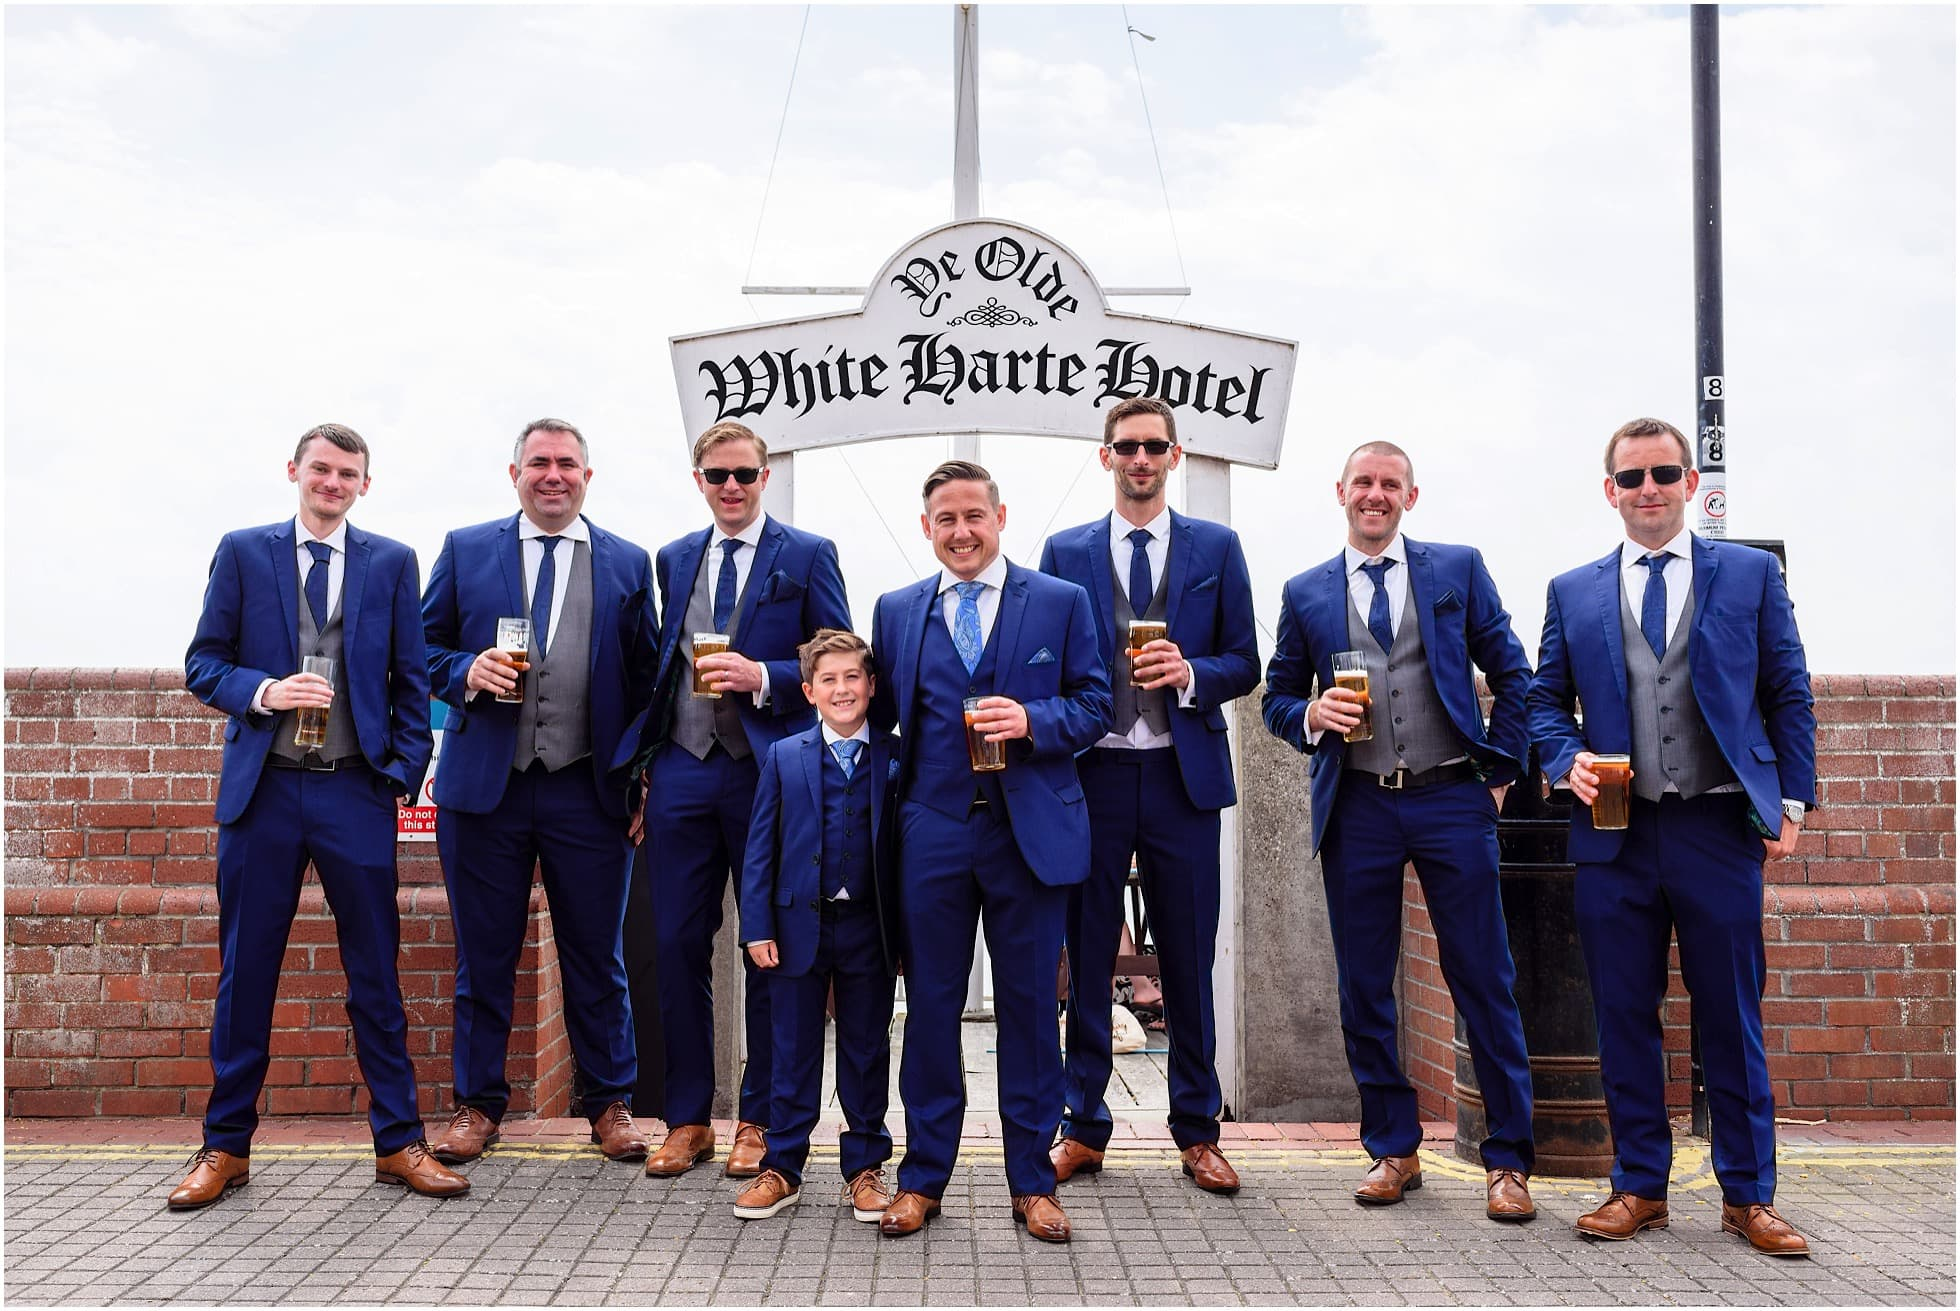 Groomsmen outside the White Harte Hotel, Burnham-on-Crouch